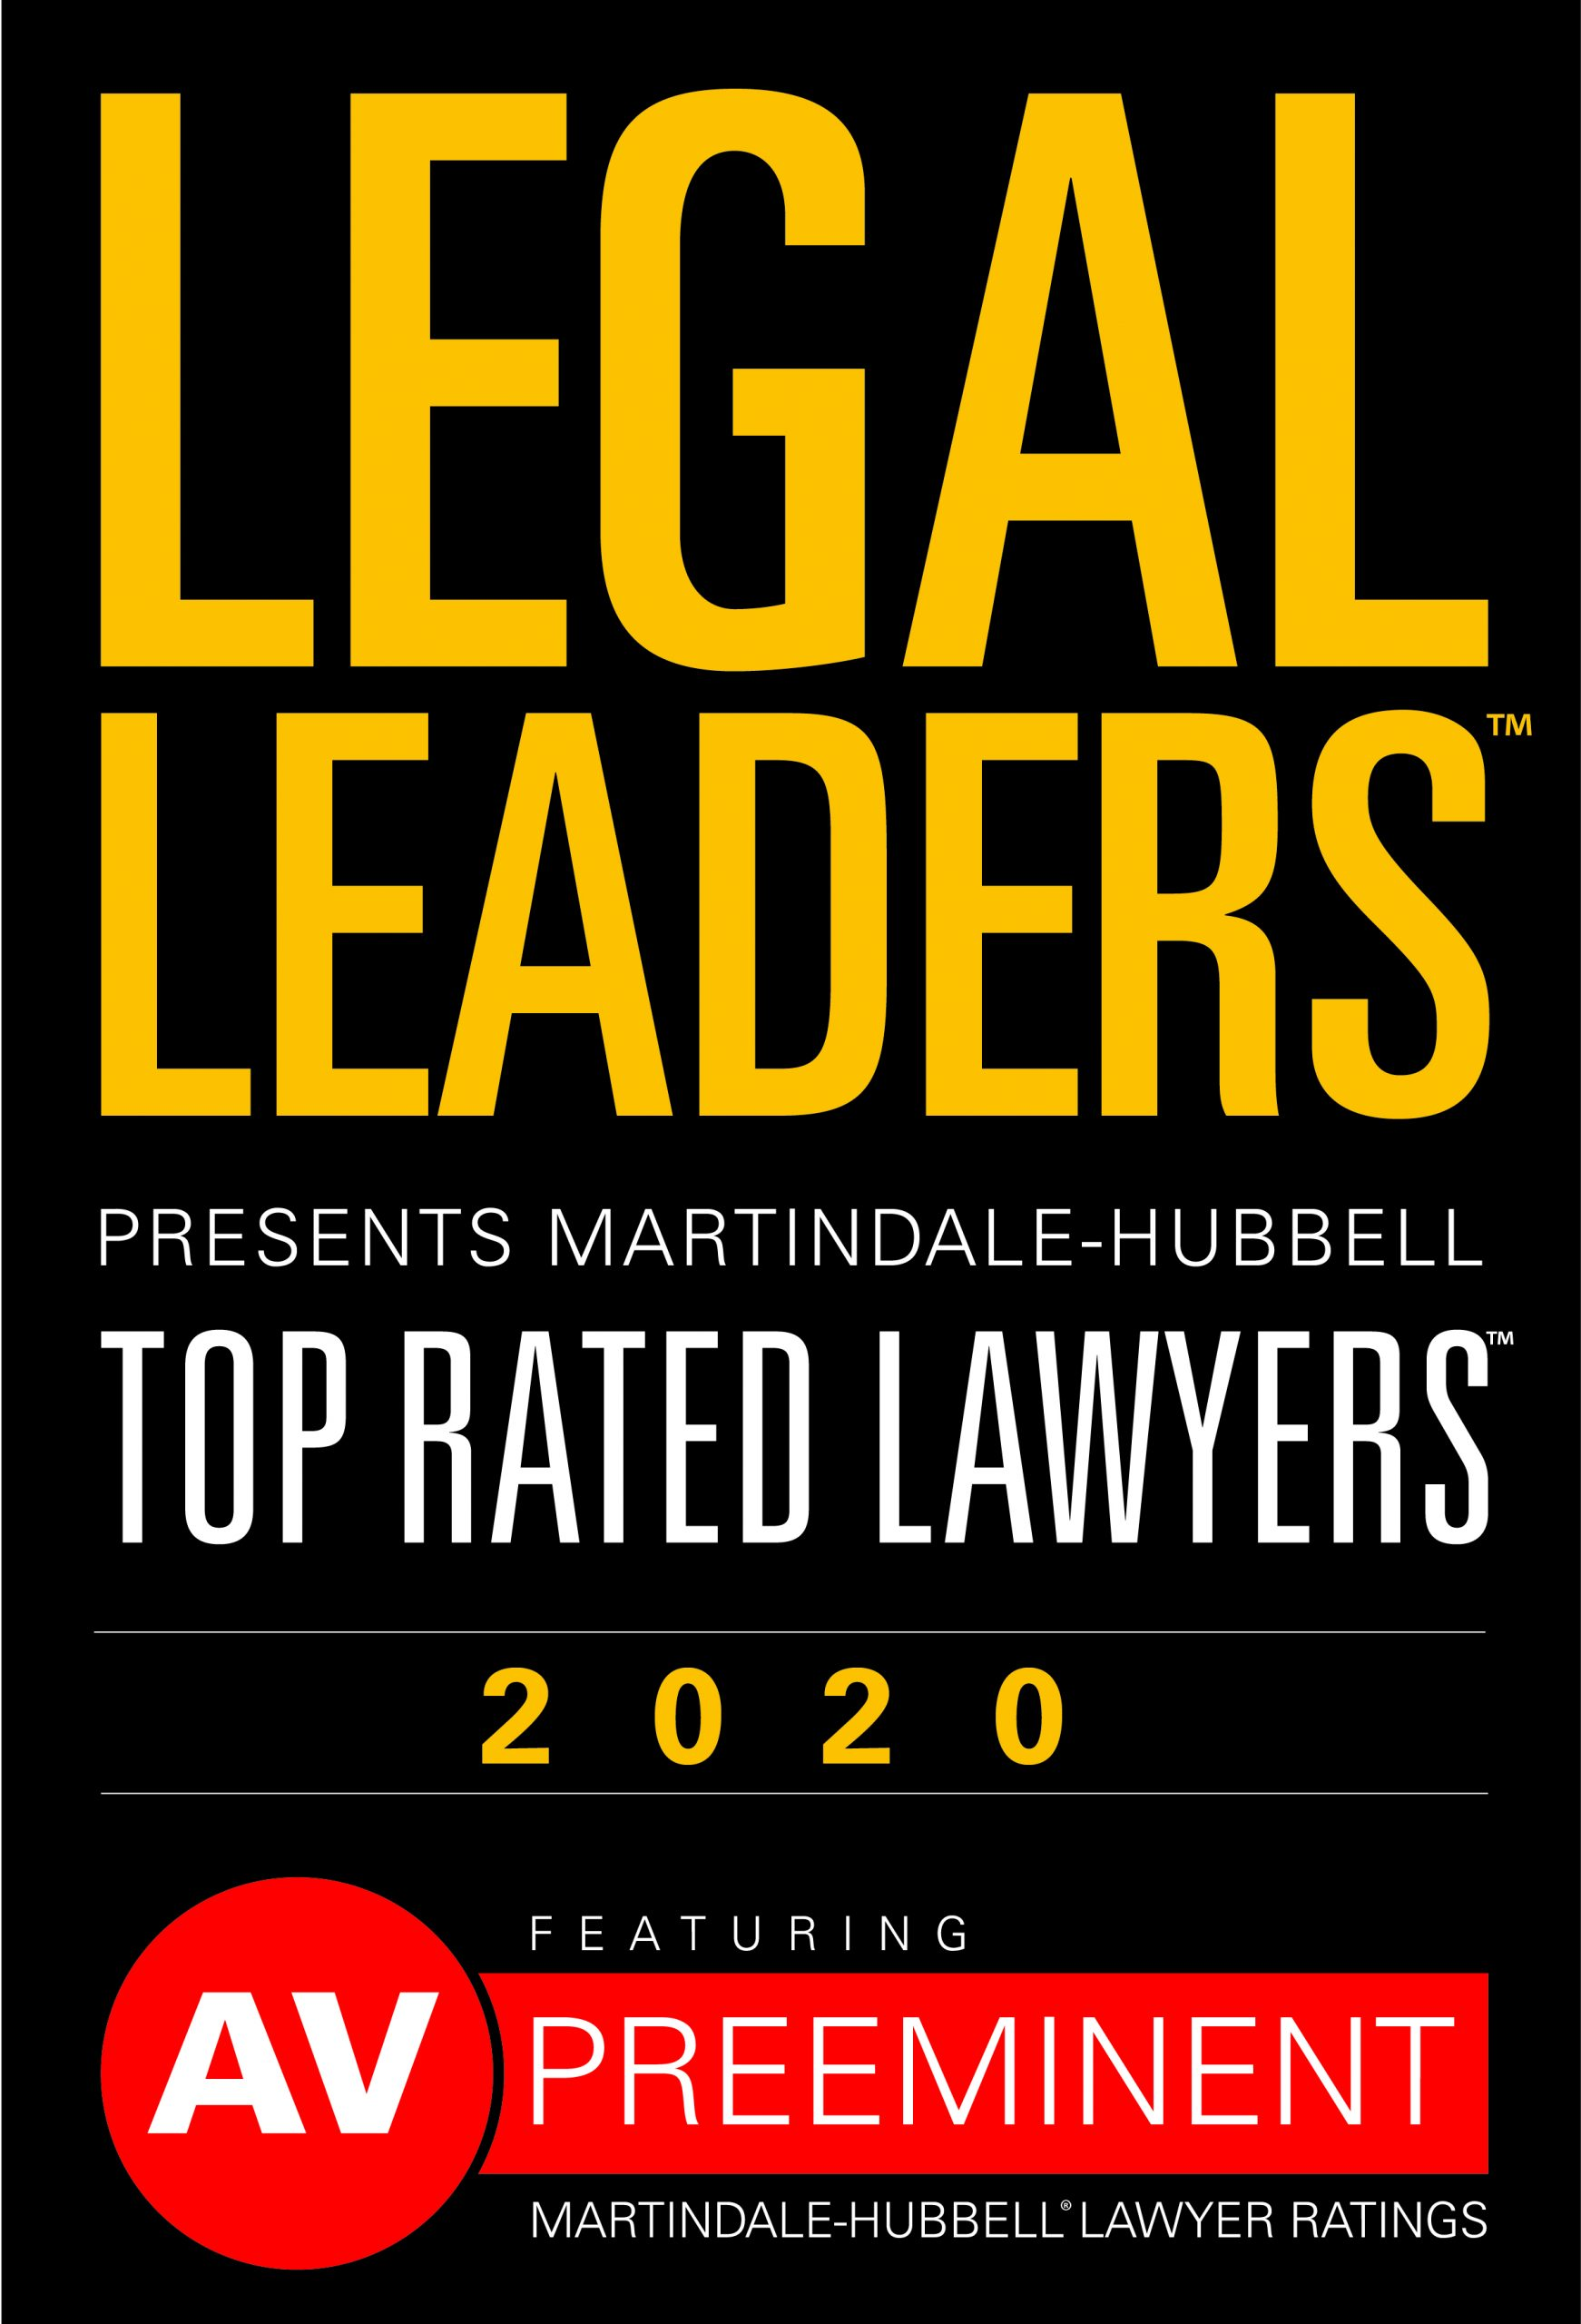 Legal Leaders Top Rate Lawyers 2020